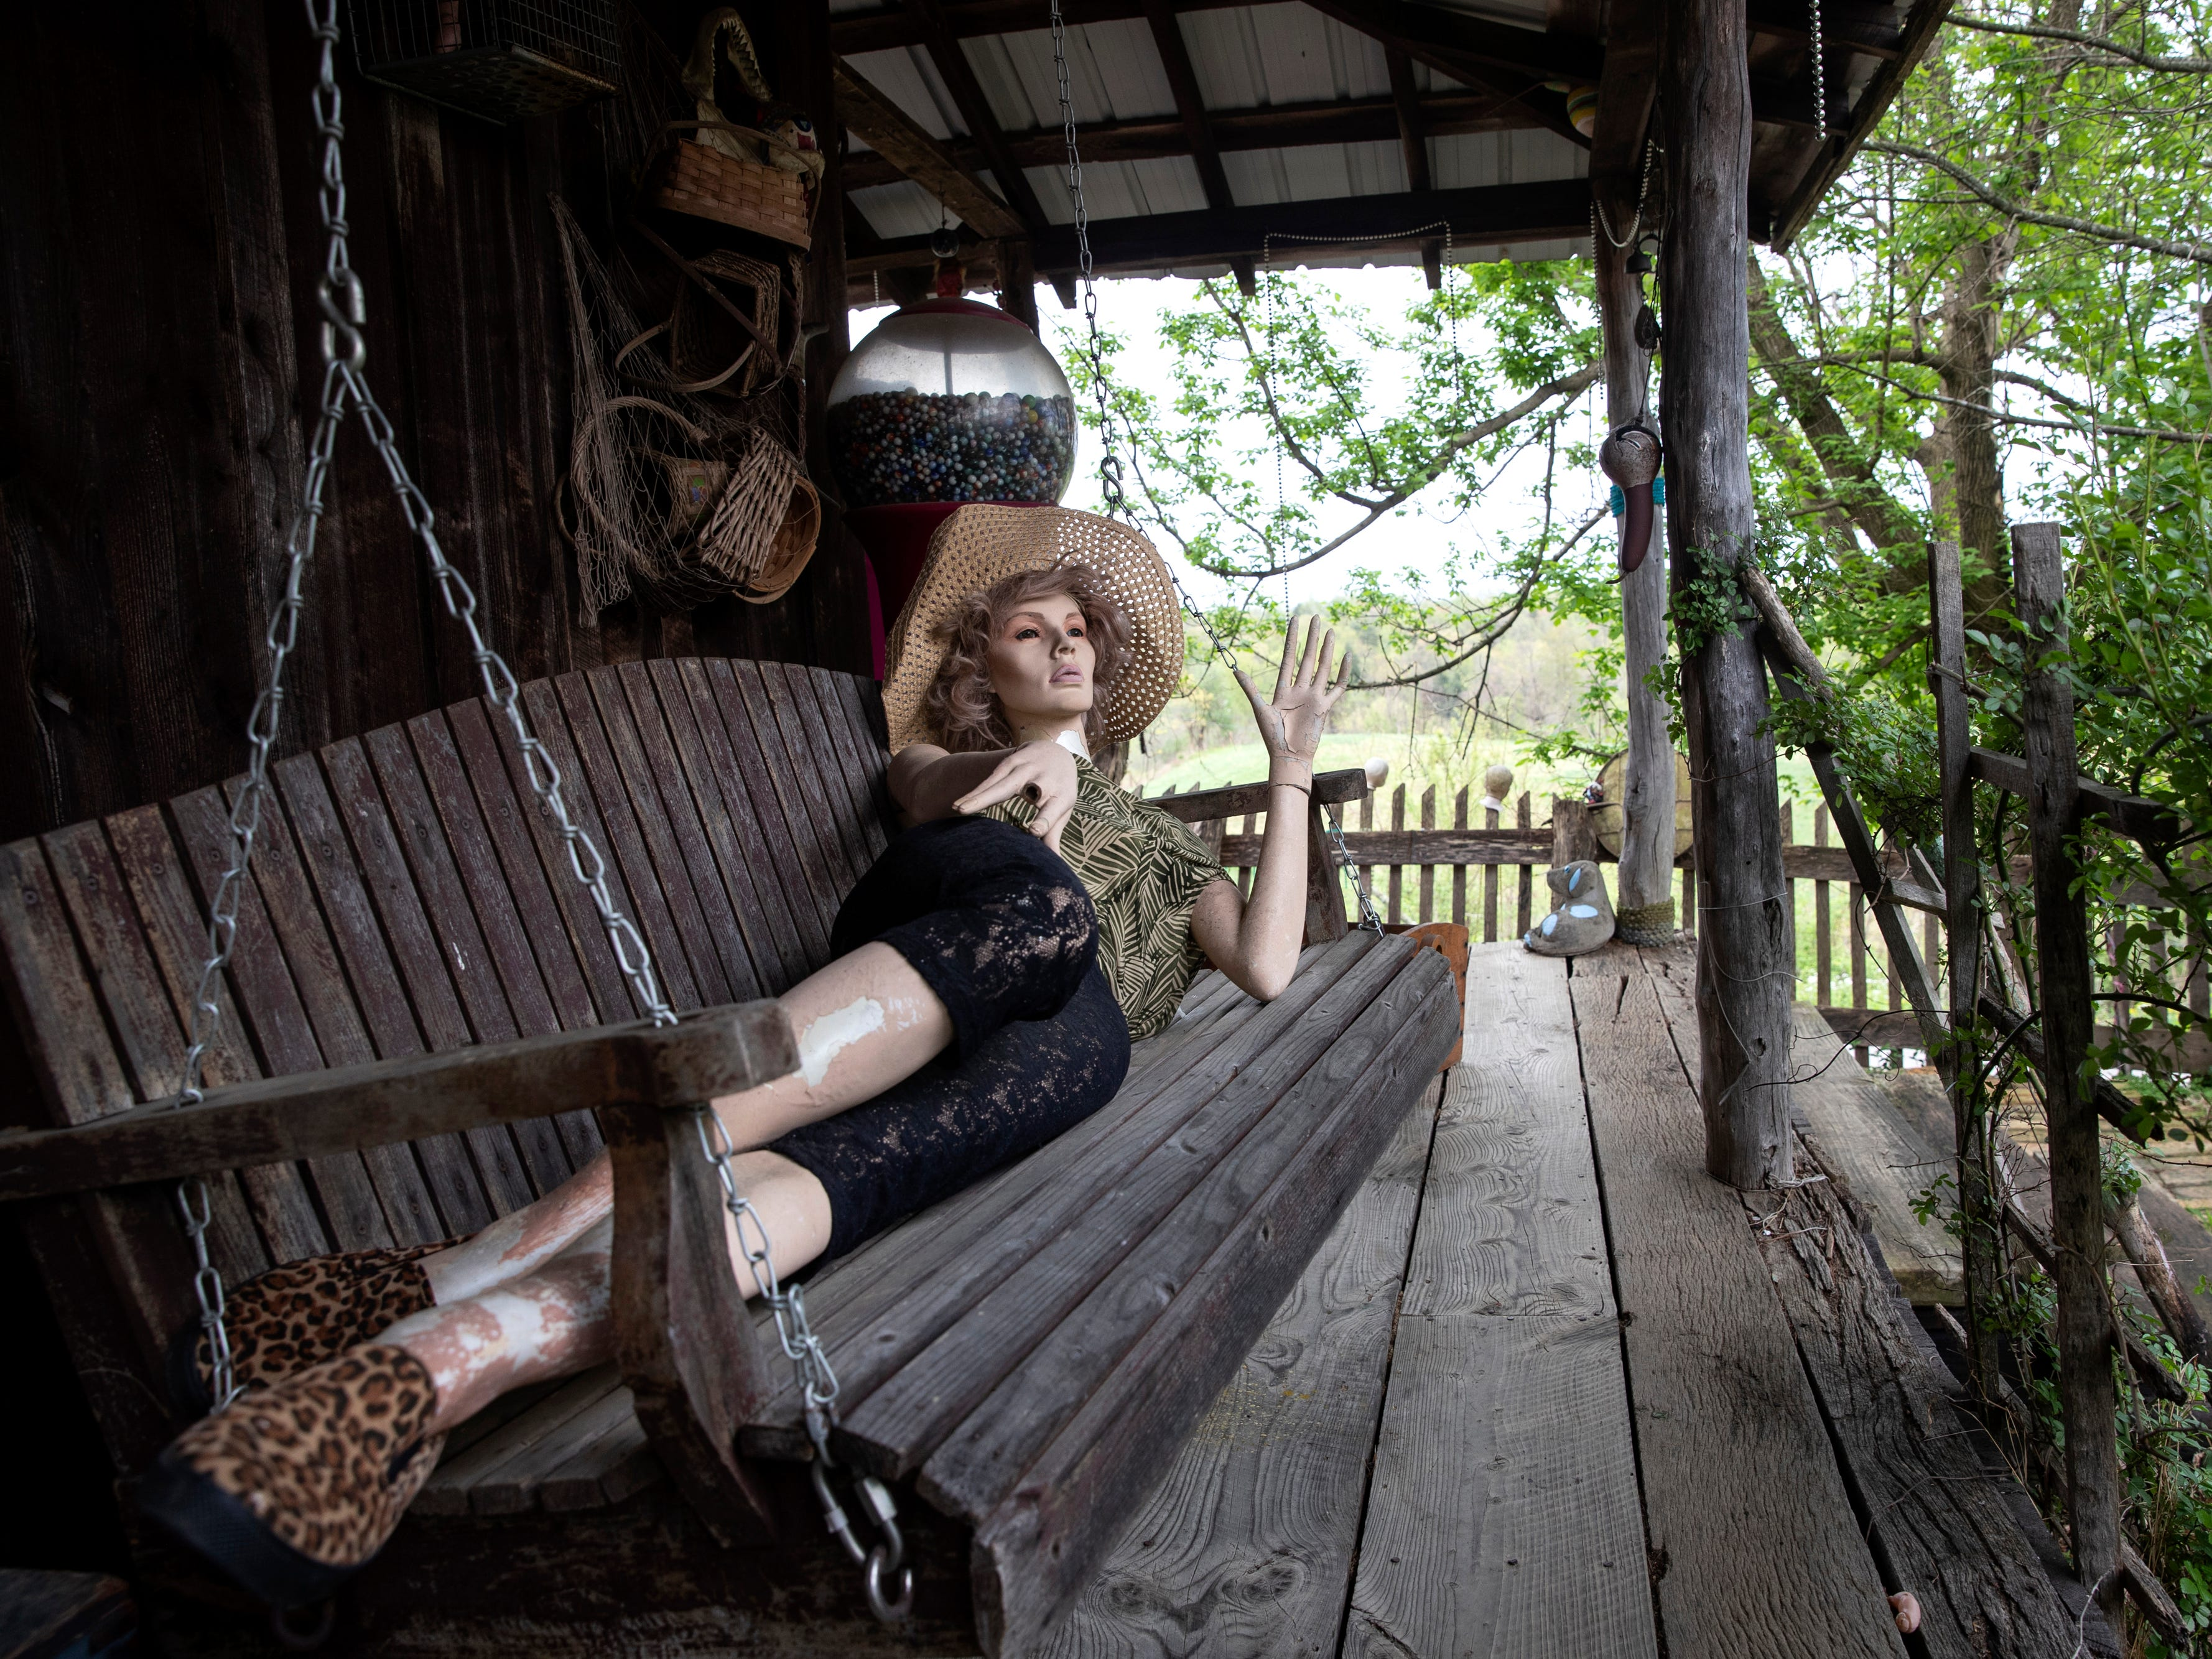 A mannequin reclines on a swing the Home for Wayward Babydolls. April 19, 2019